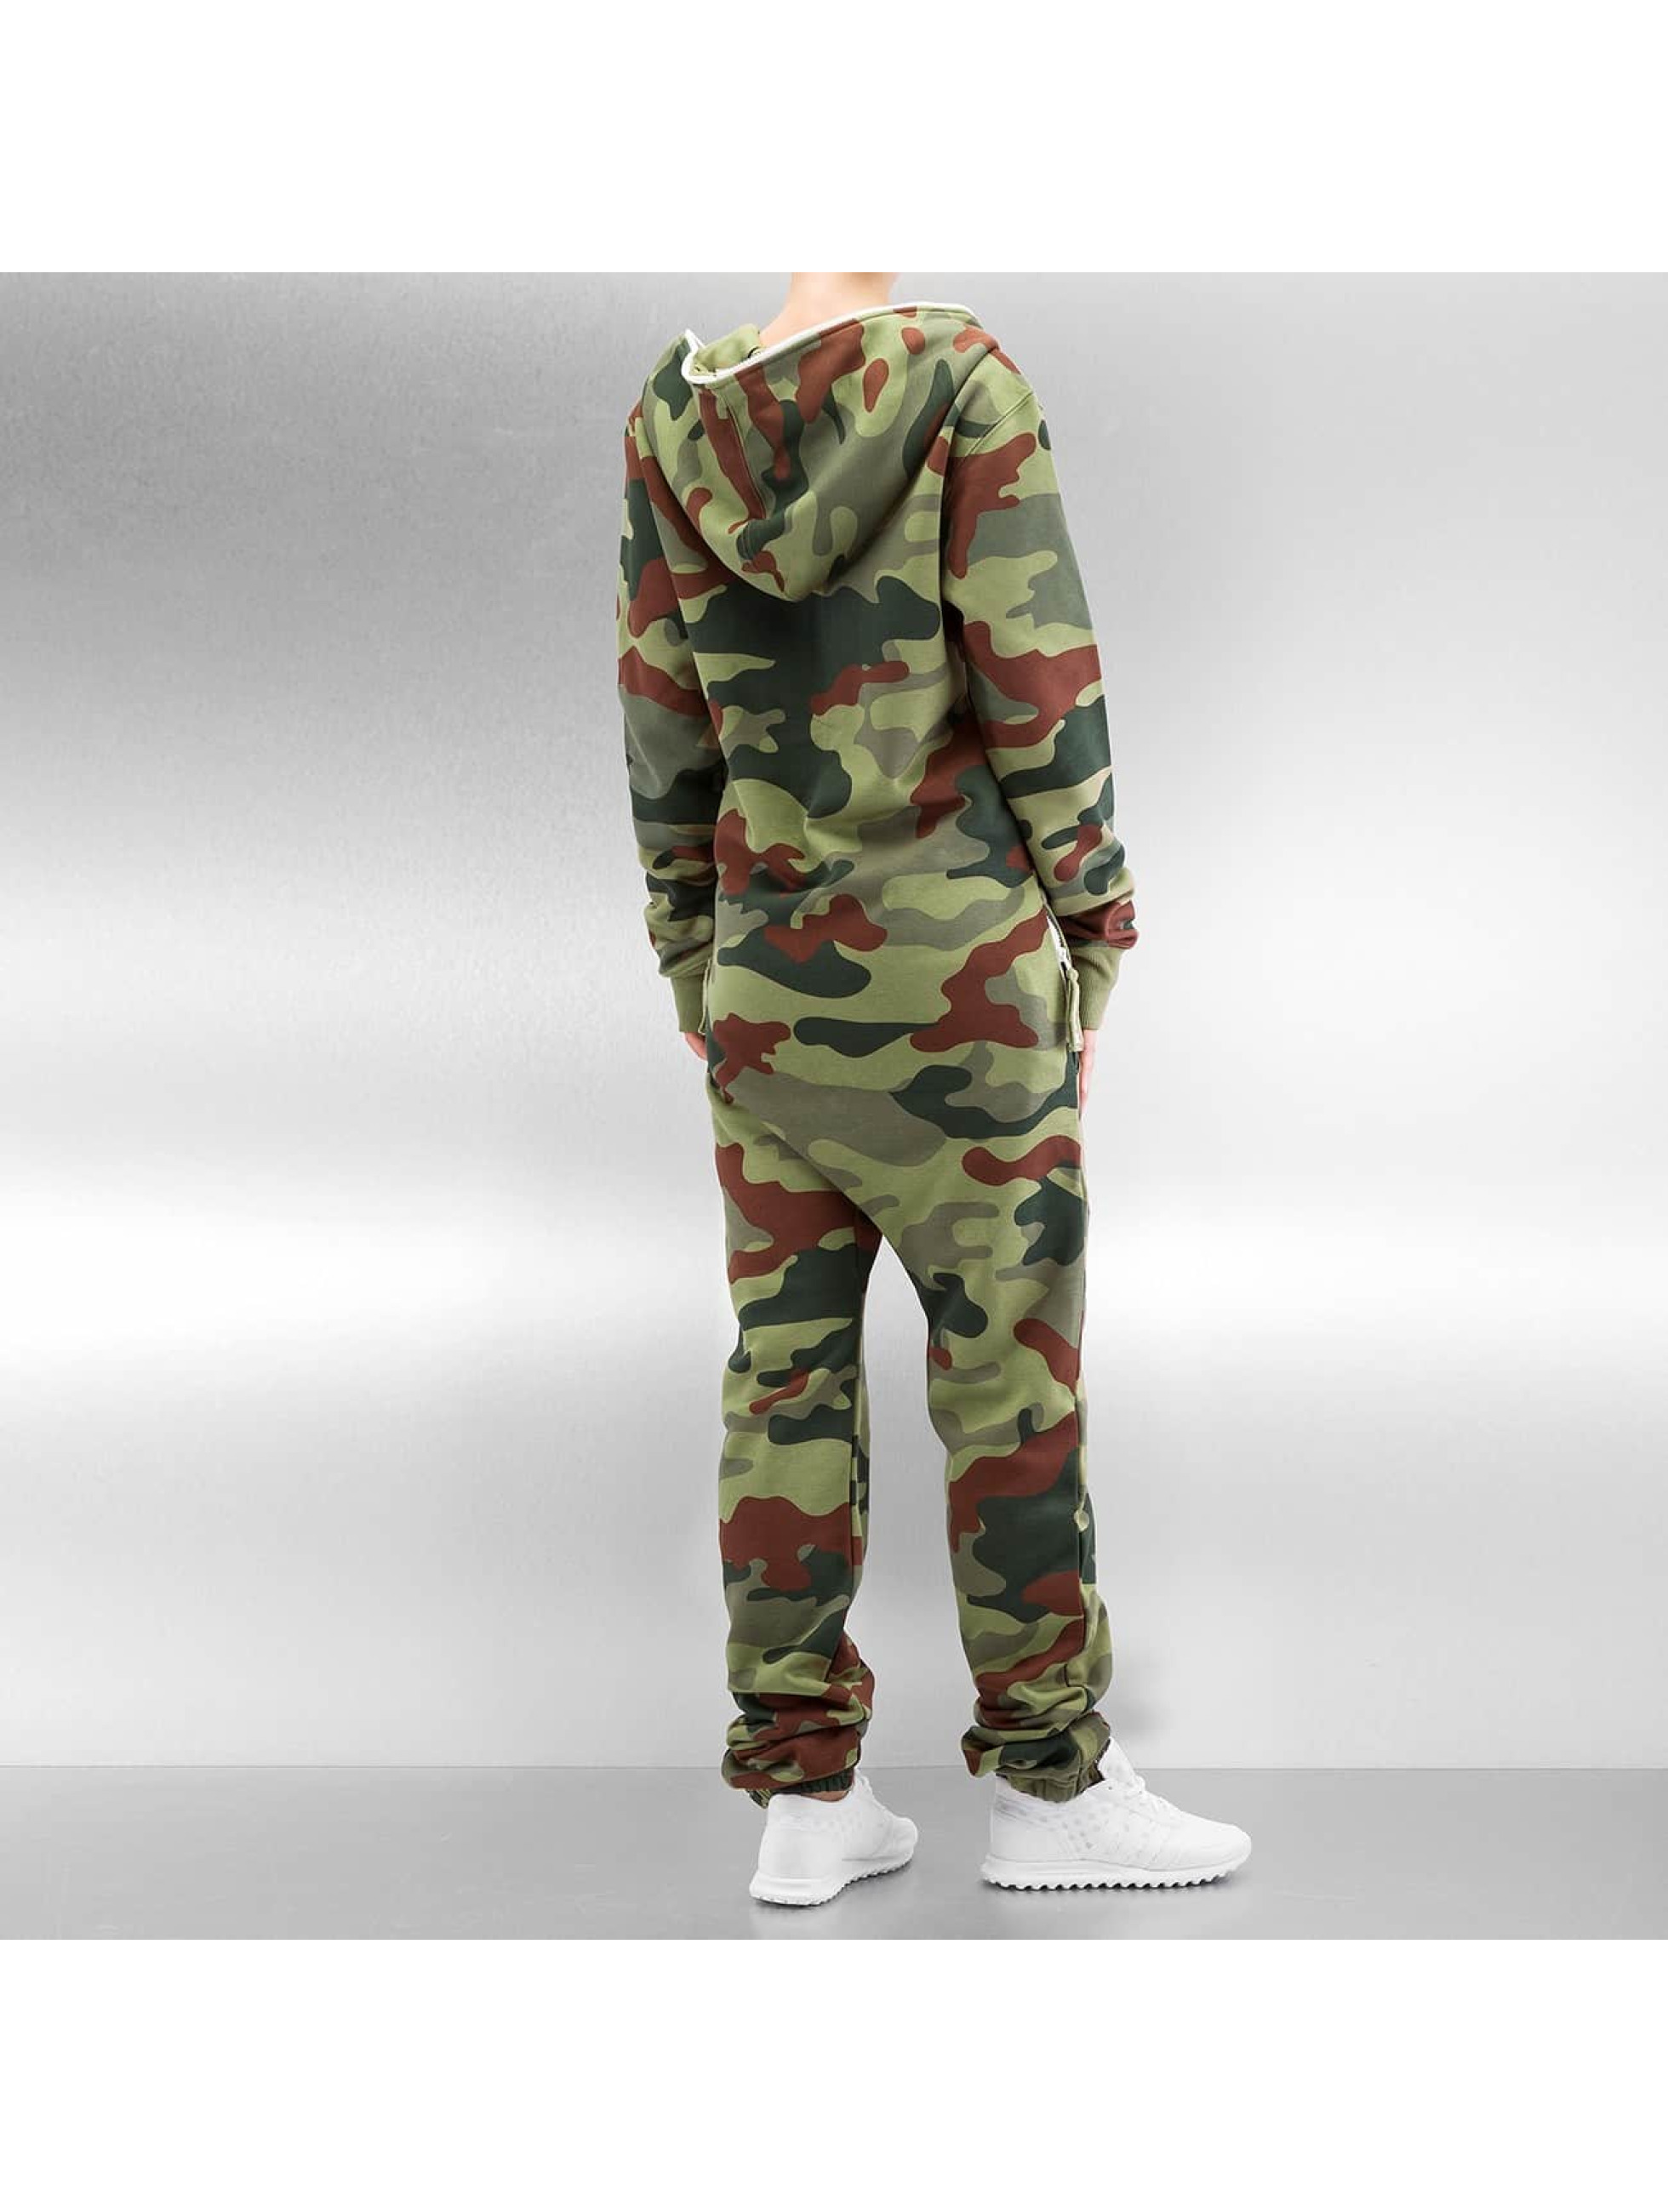 OnePiece Combinaison & Combishort Camouflage camouflage